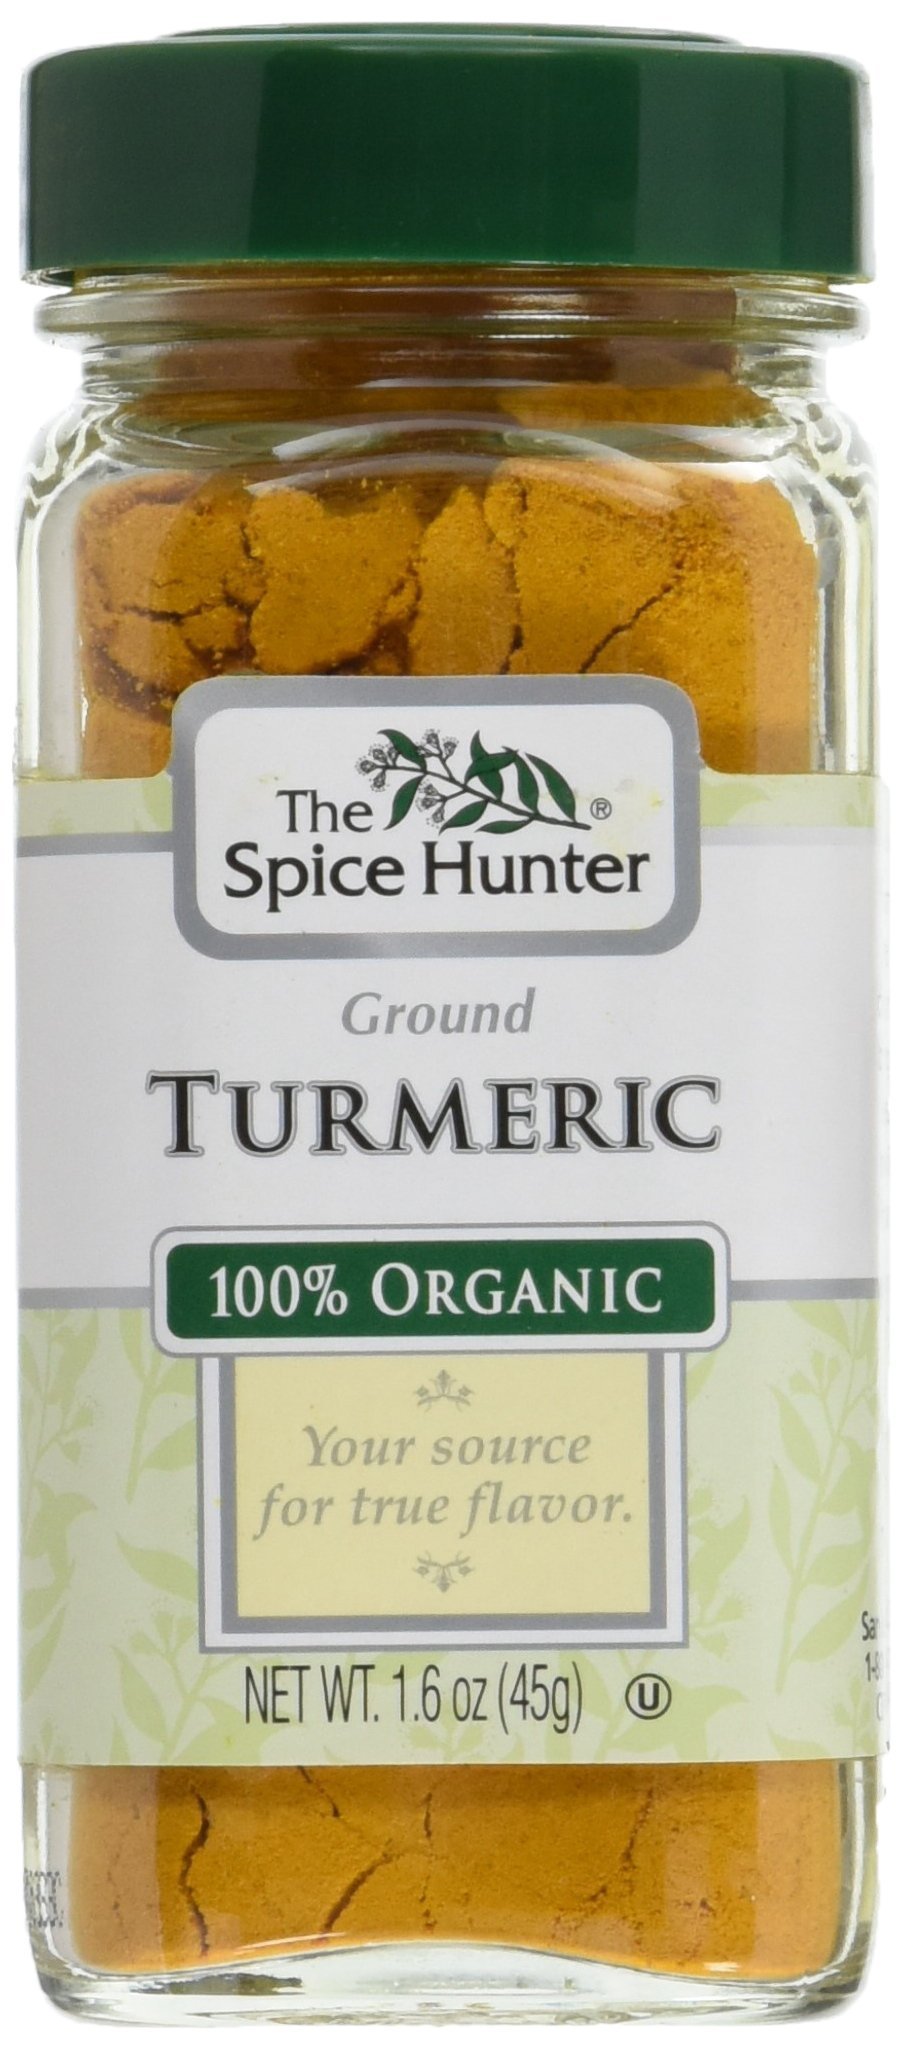 The Spice Hunter Turmeric, Ground, Organic, 1.6 Ounce Jar (Pack of 48) by Spice Hunter